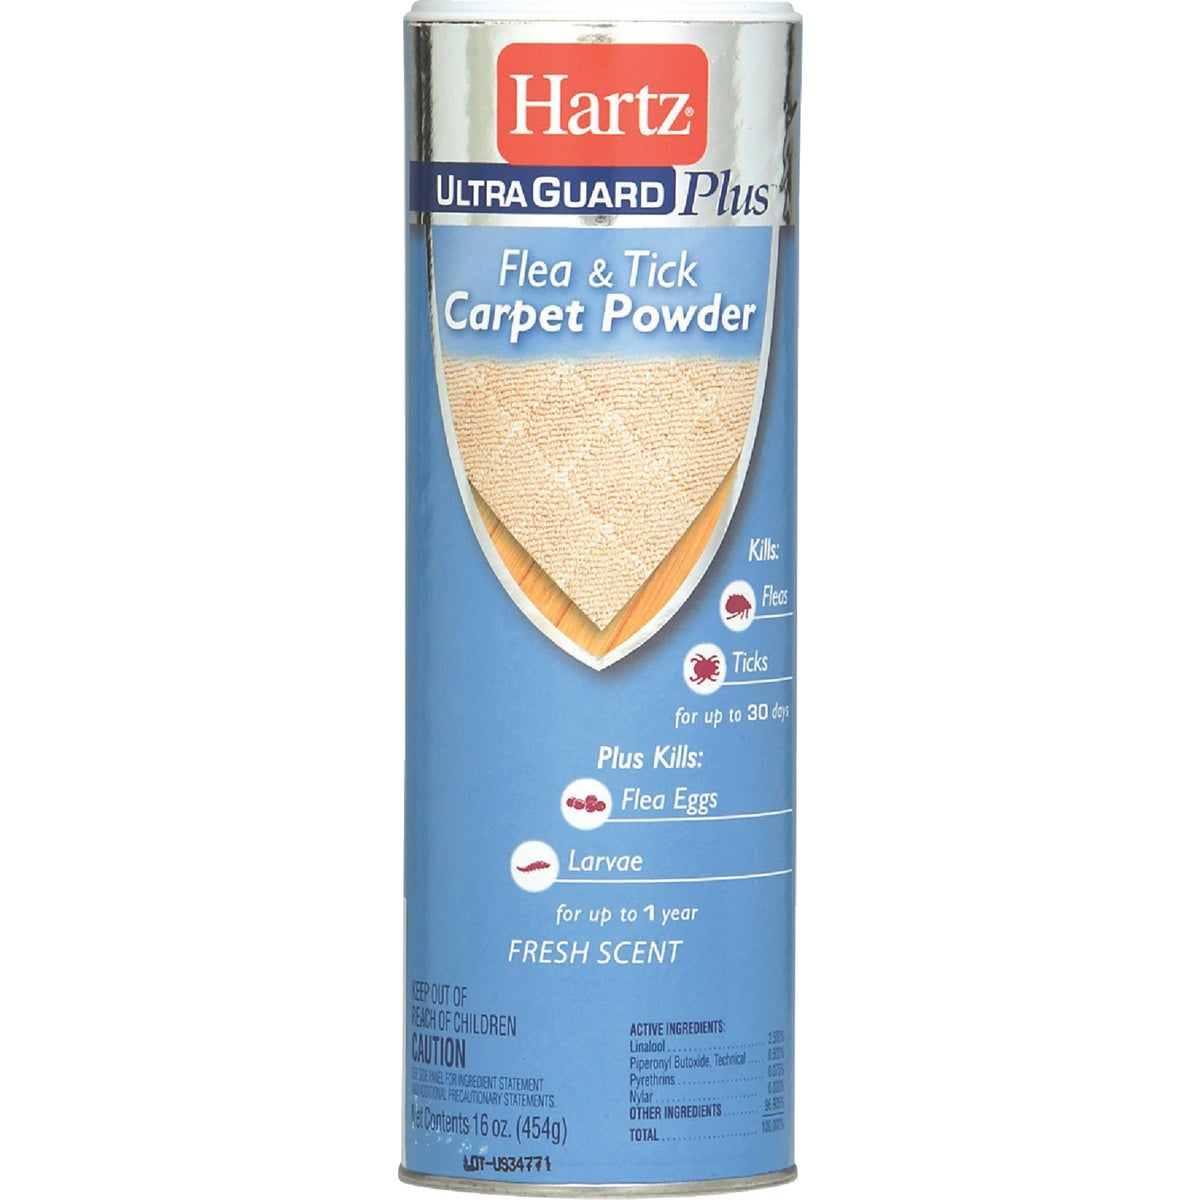 16OZ F&T CARPET POWDER - 02265 by Hartz Mountain Corp